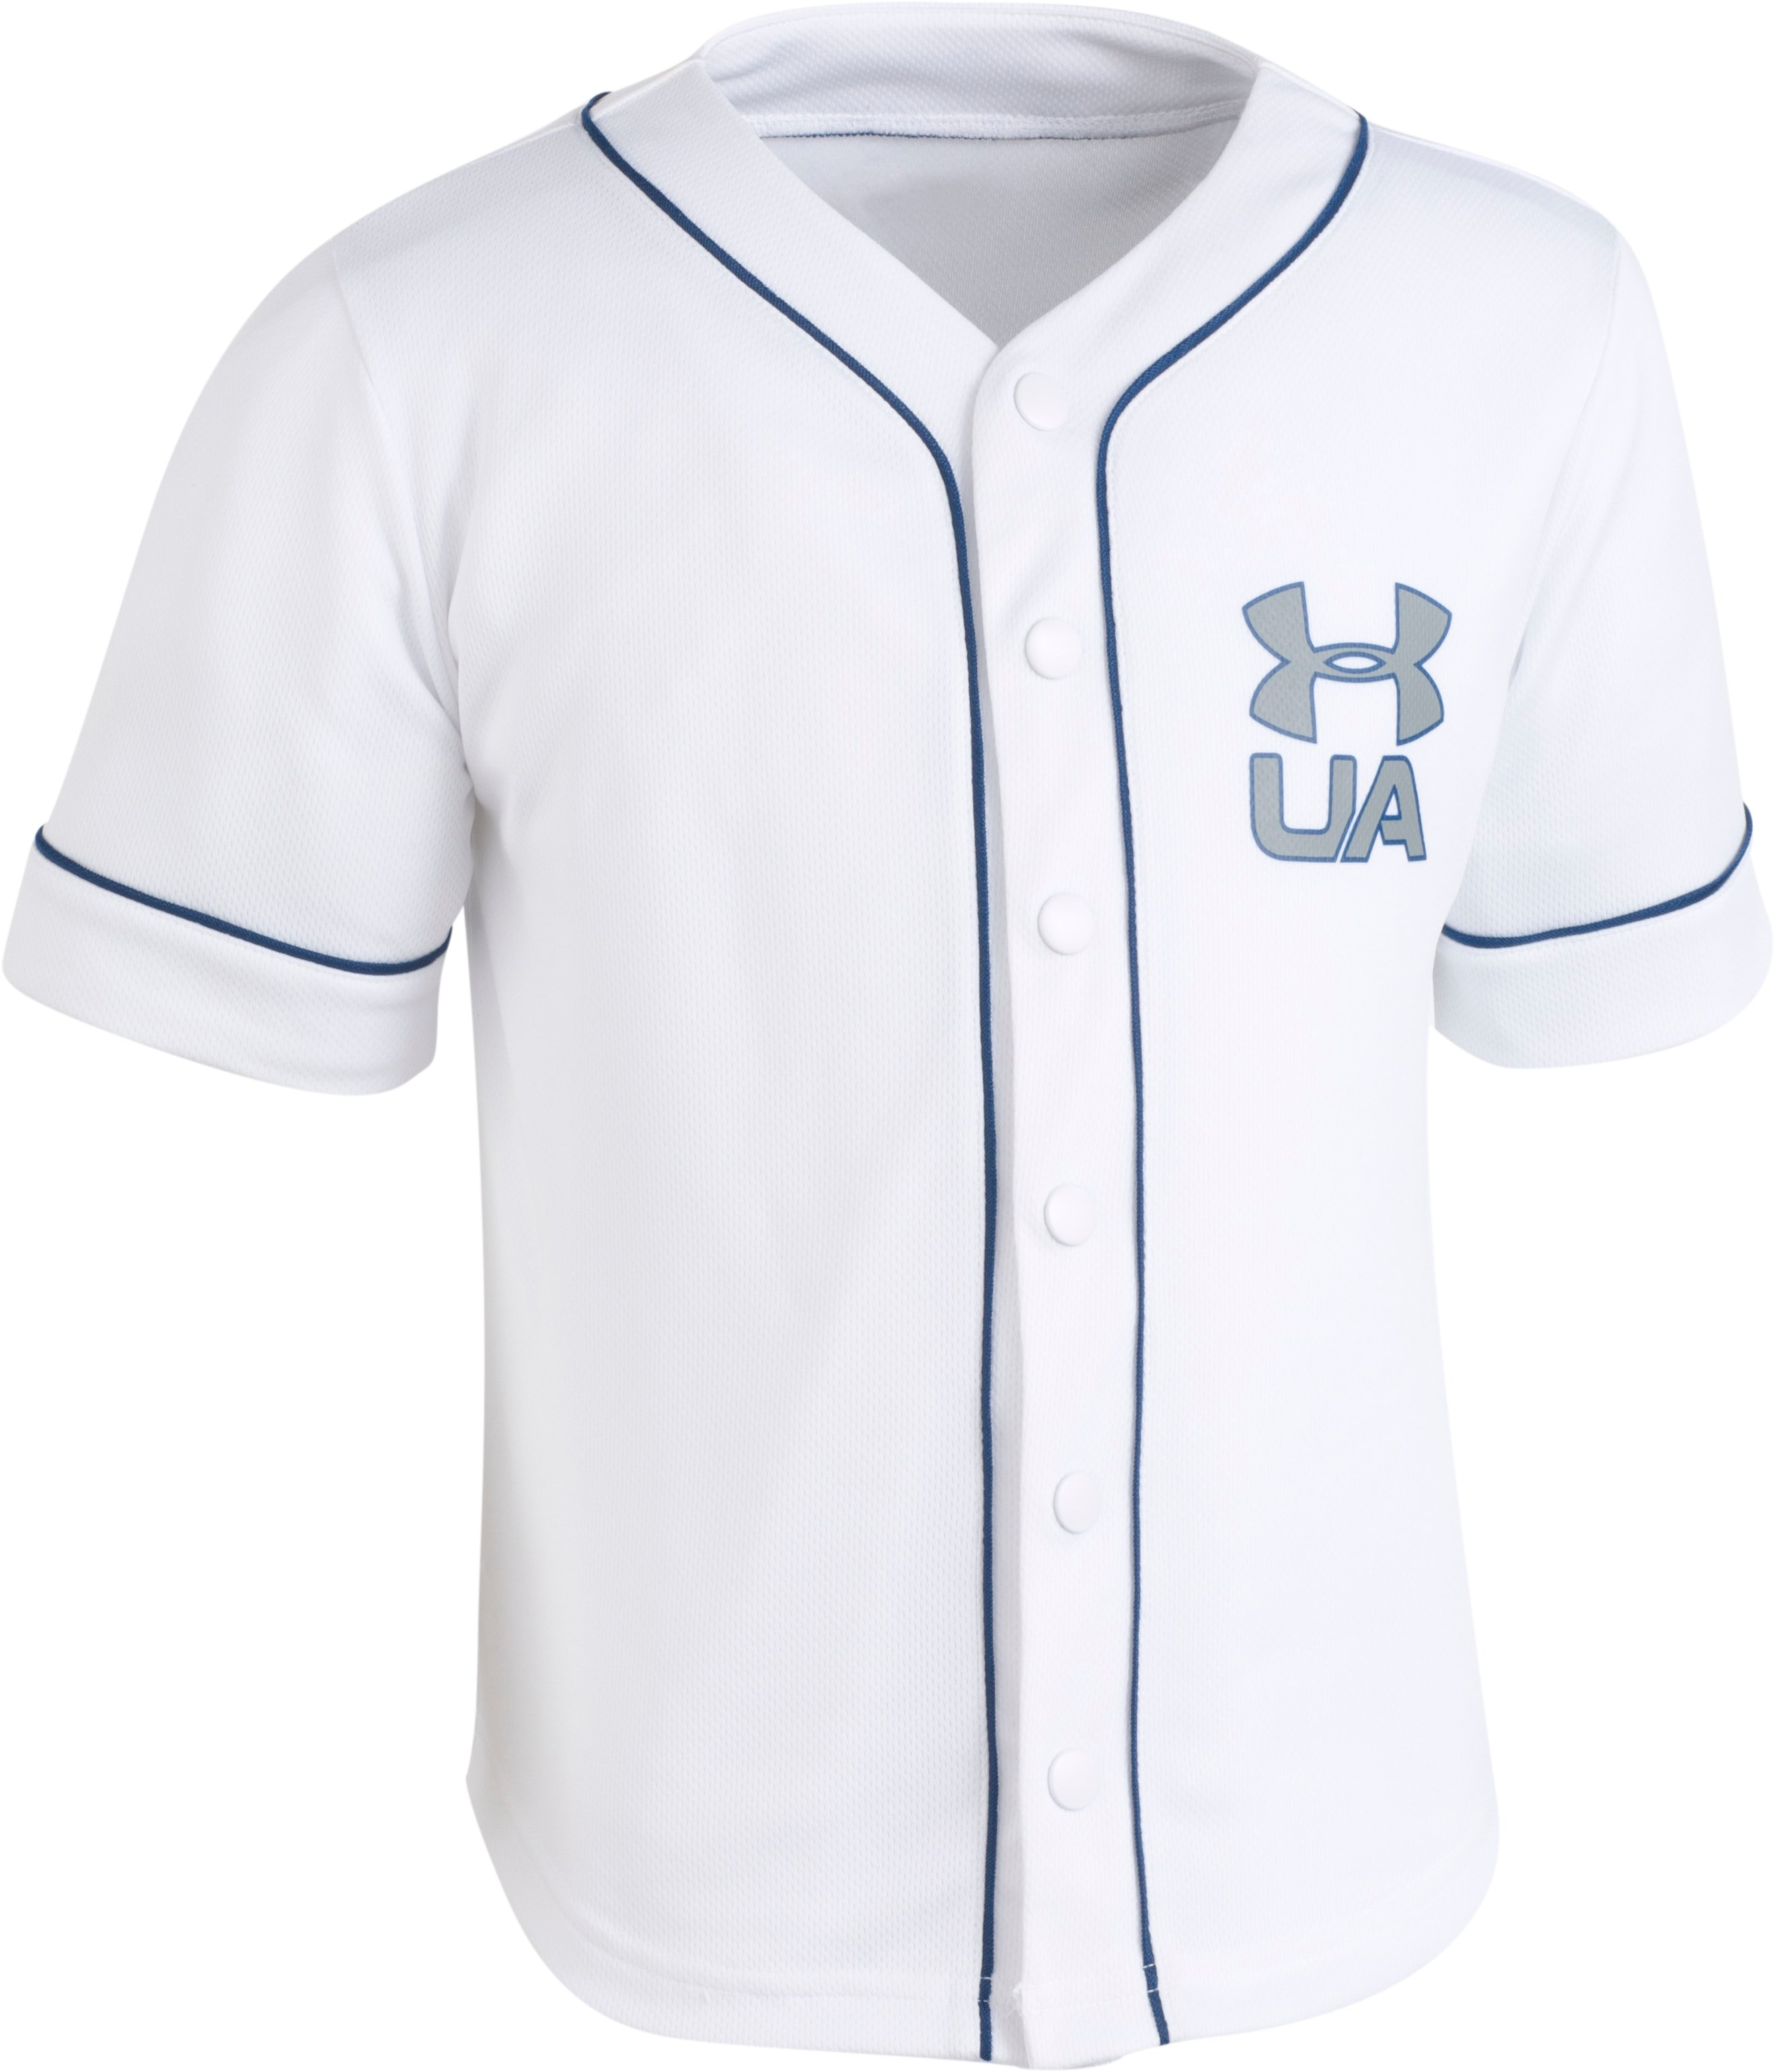 Boys' Toddler UA Homerun Baseball Jersey T-Shirt 1 Color $30.00